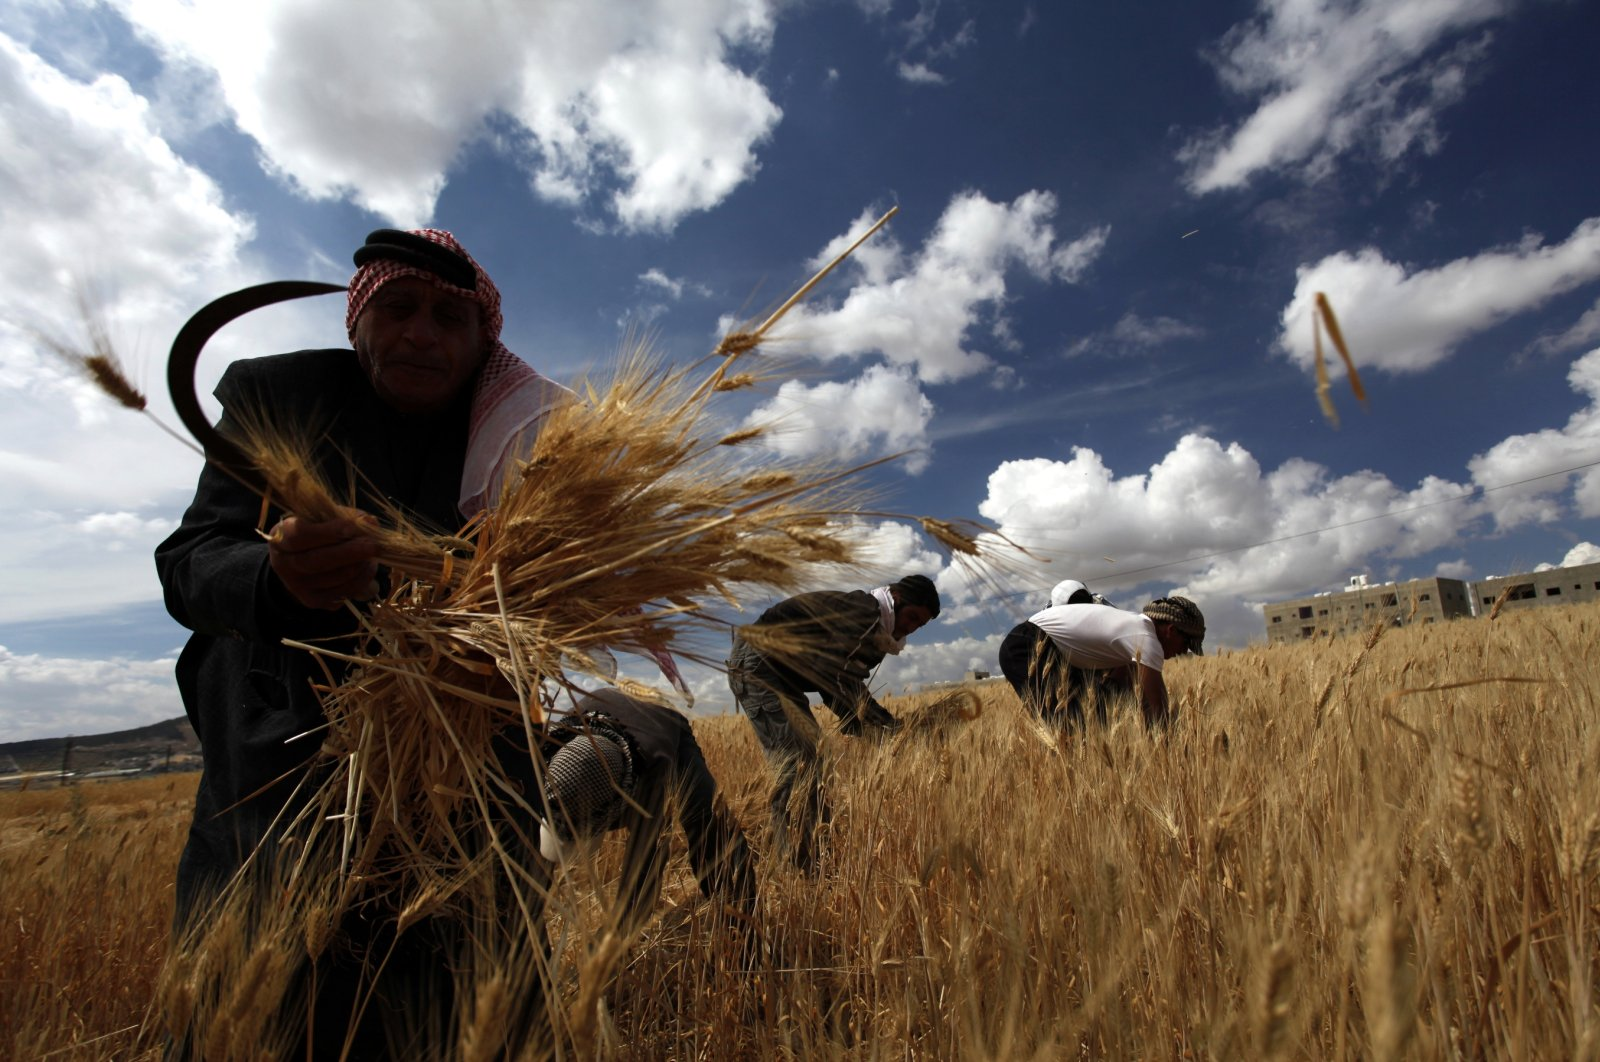 Wheat farmer Mohammed al-Kharabshy (L), 75, harvests his crops with the help of Syrian refugees Khaled, Khalaf, Madeh and Ali Bani Khaled, three brothers and their cousin, on the outskirts of Amman, Jordan, May 15, 2013.  (AP Photo)